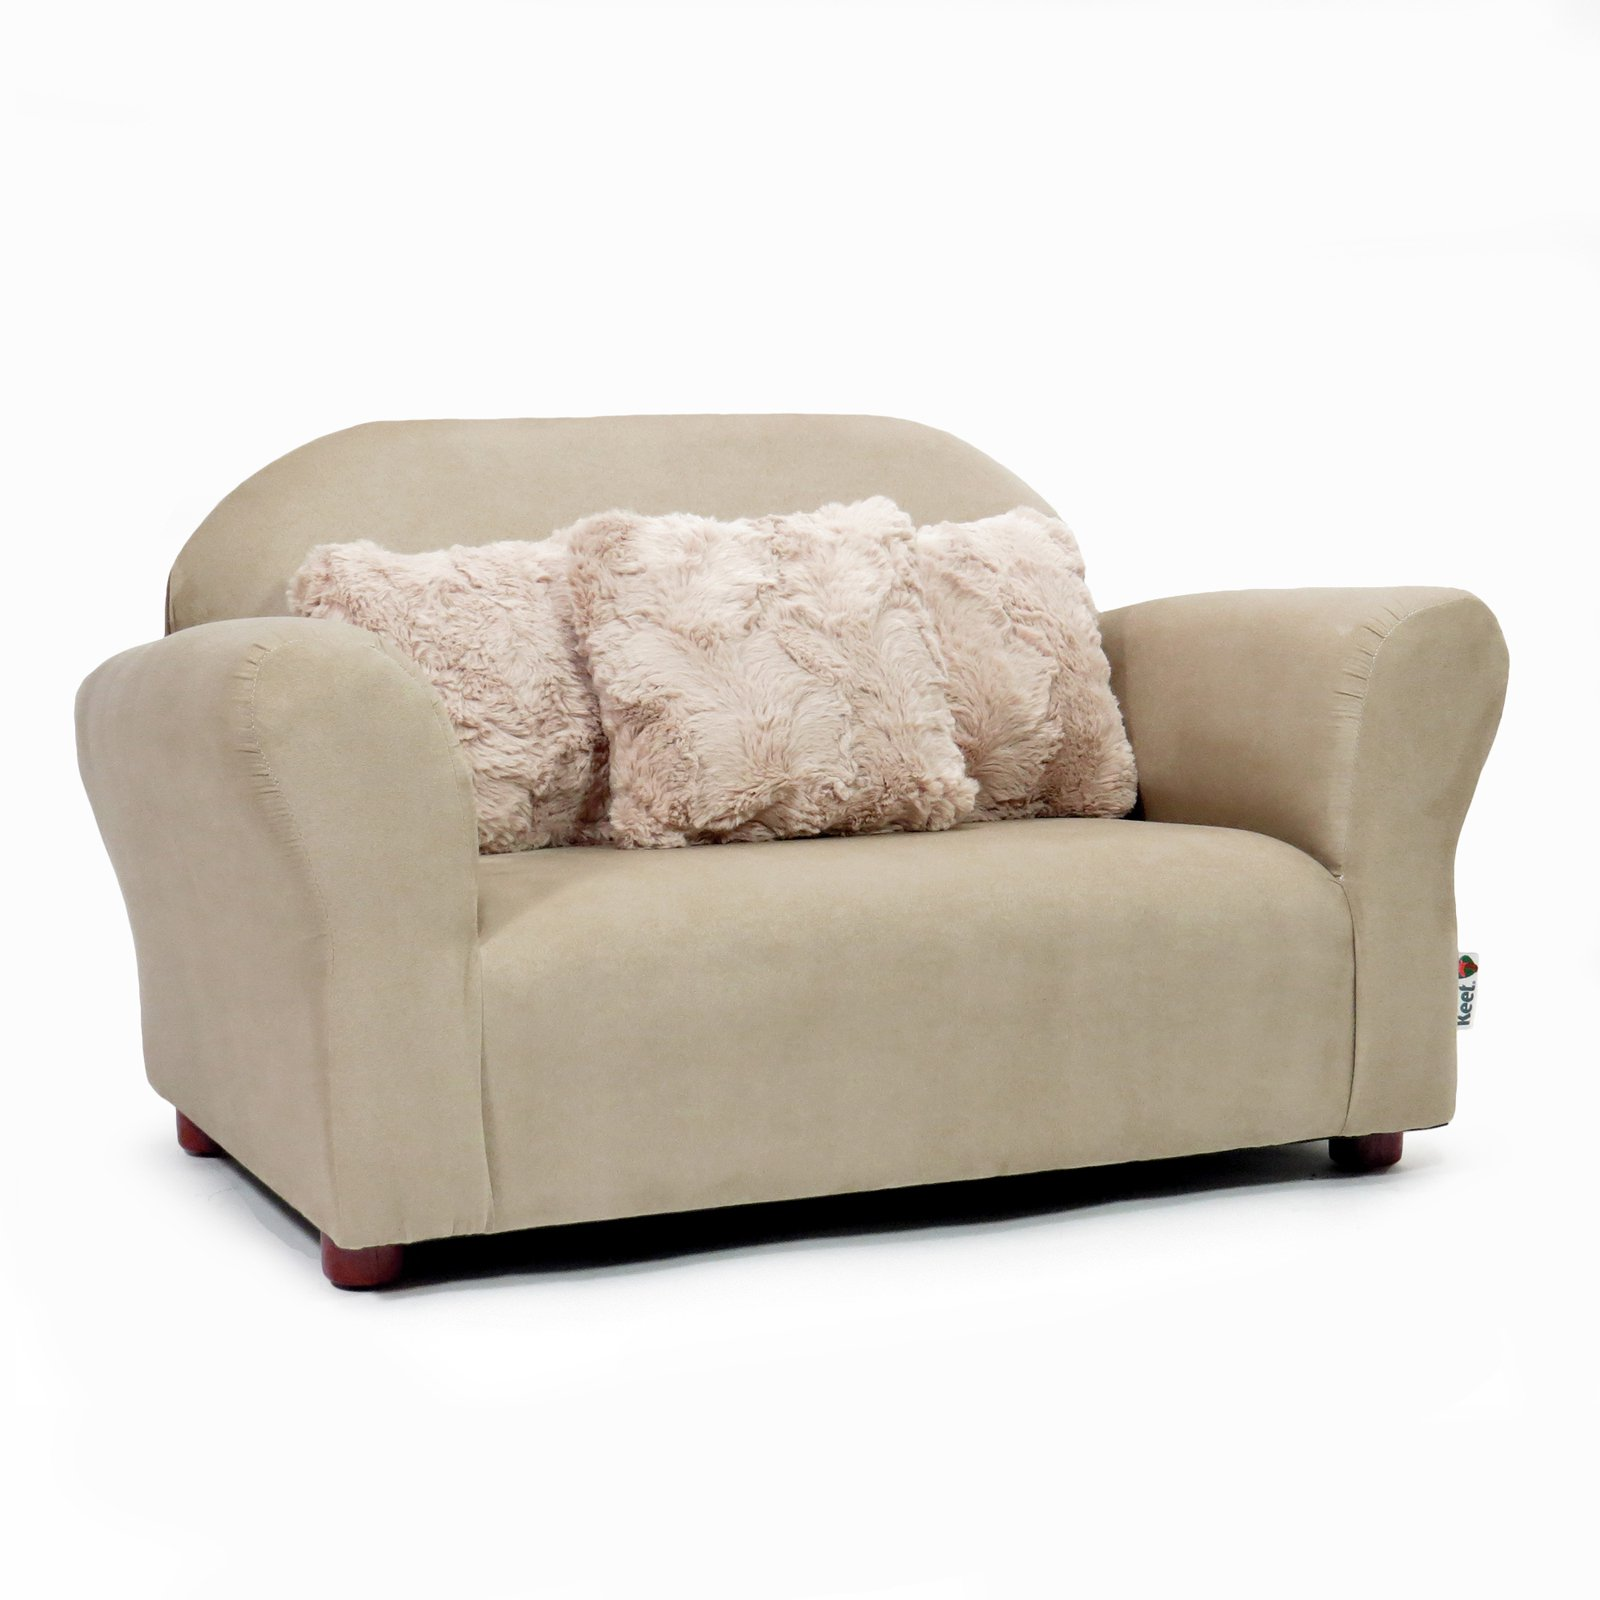 Brown and Khaki Keet Plush Childrens Sofa with accent pillows